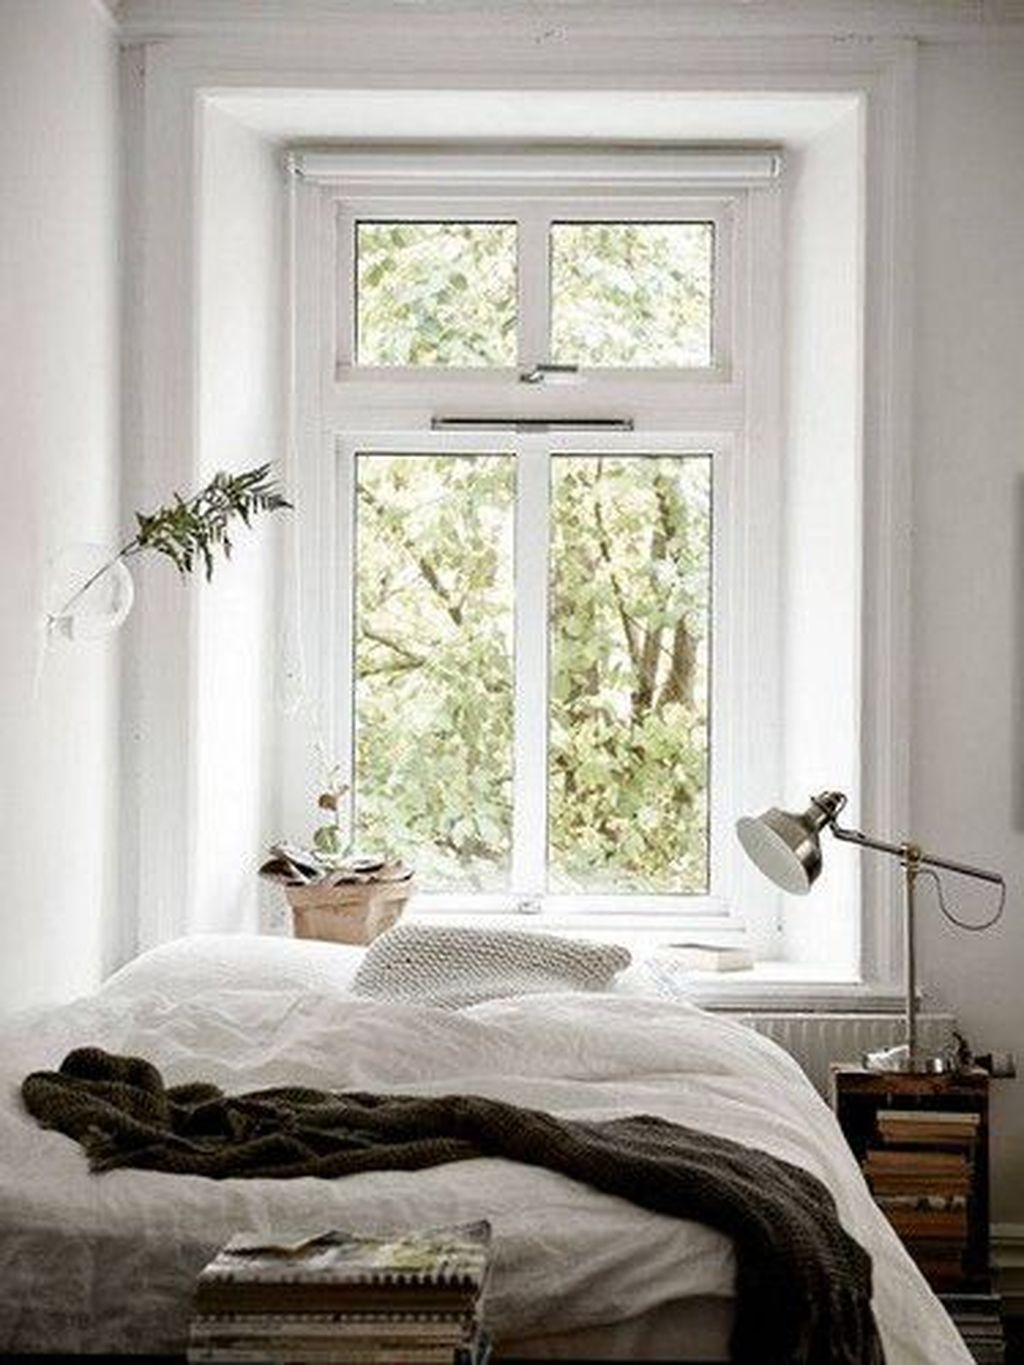 Admirable Tiny Bedroom Design Ideas 16